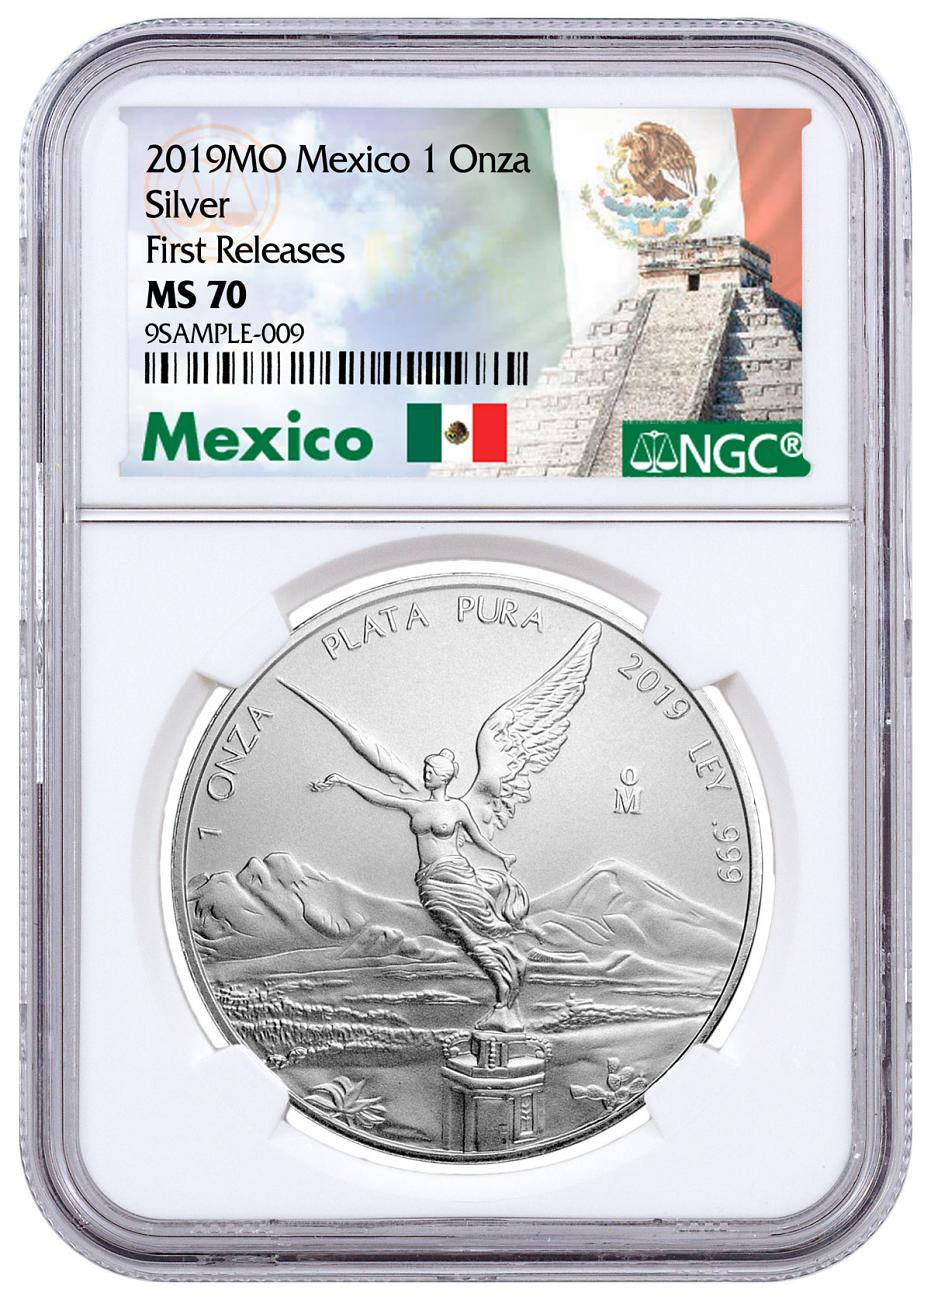 2019 Mexico 1 oz Silver Libertad 1 Onza Coin NGC MS70 FR Mexico Label